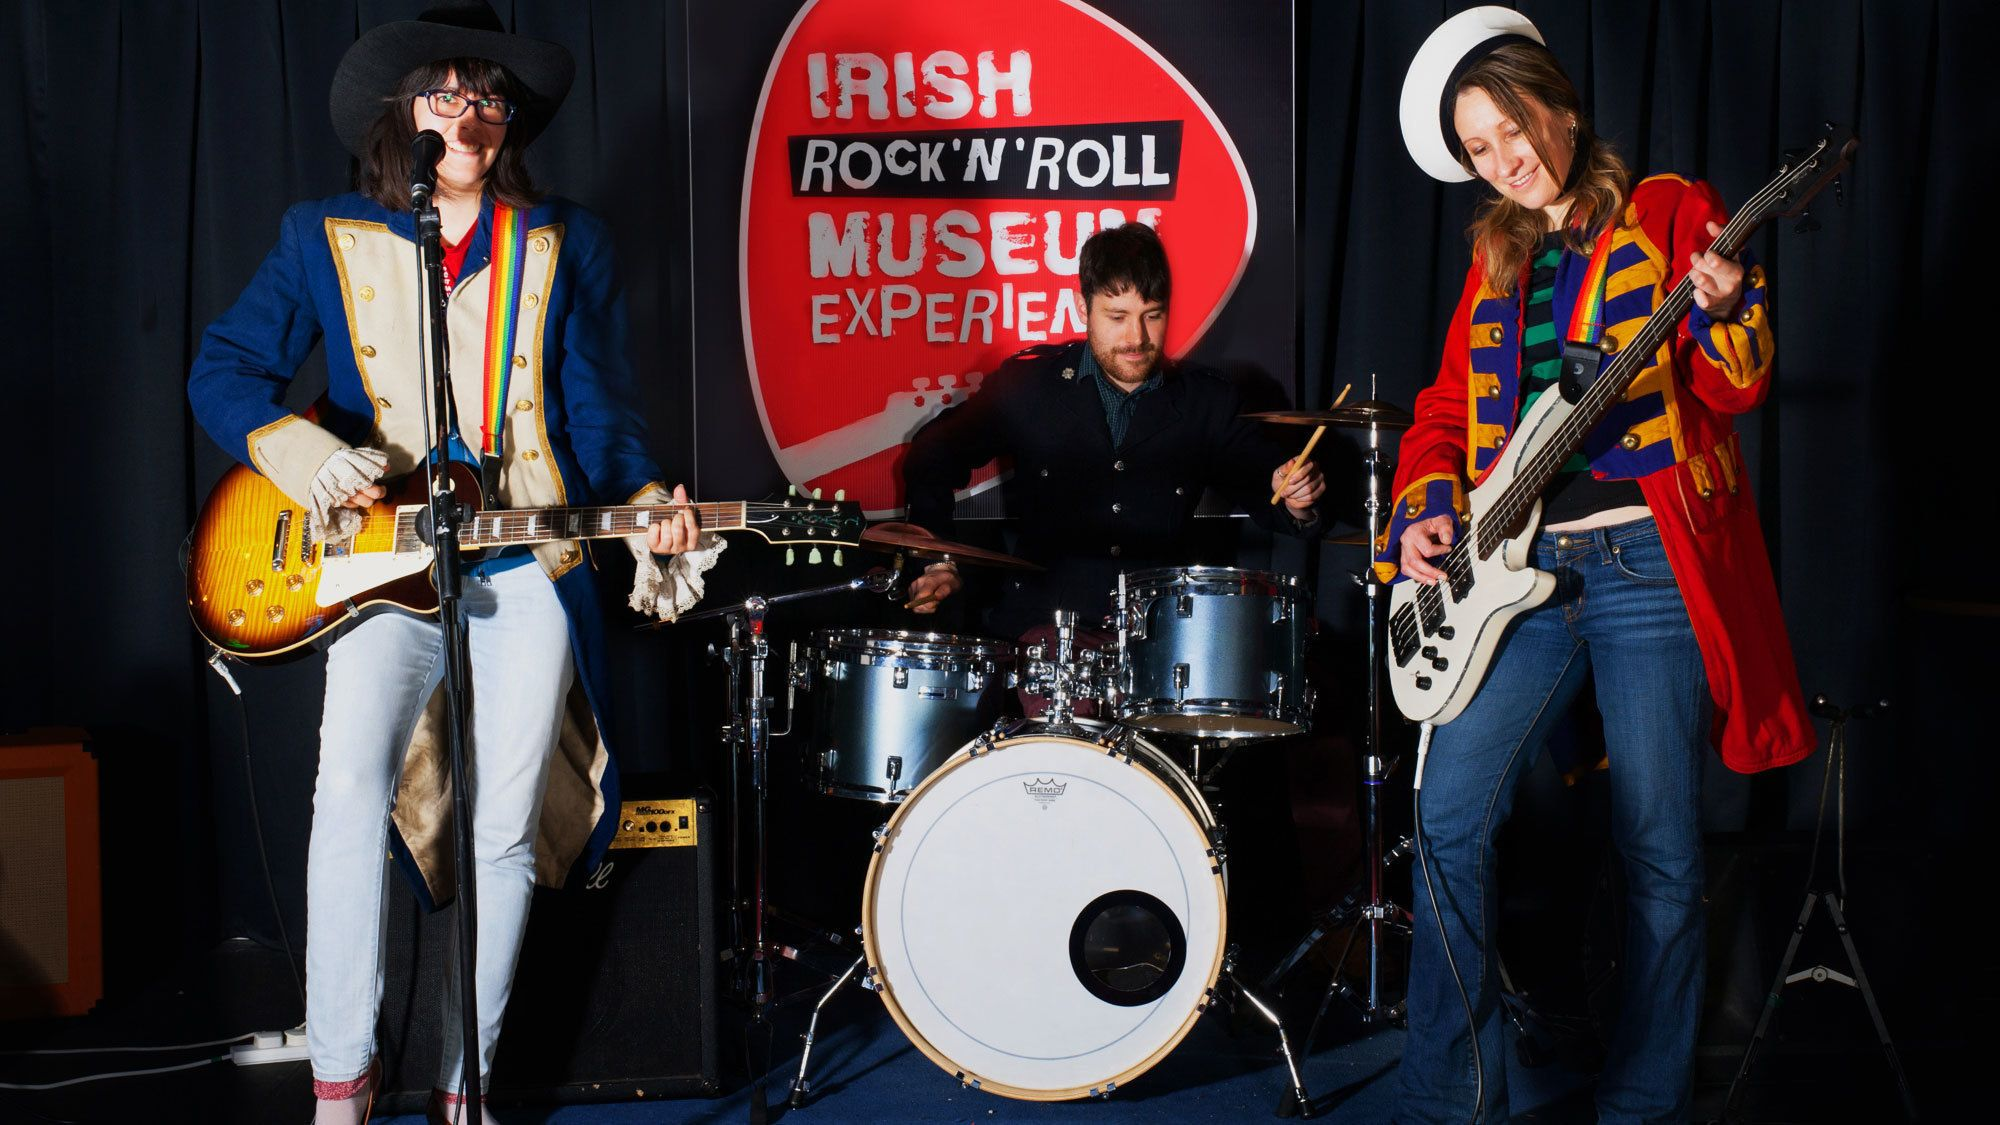 Tour group playing instruments at the Irish Rock N Roll Museum in Dublin